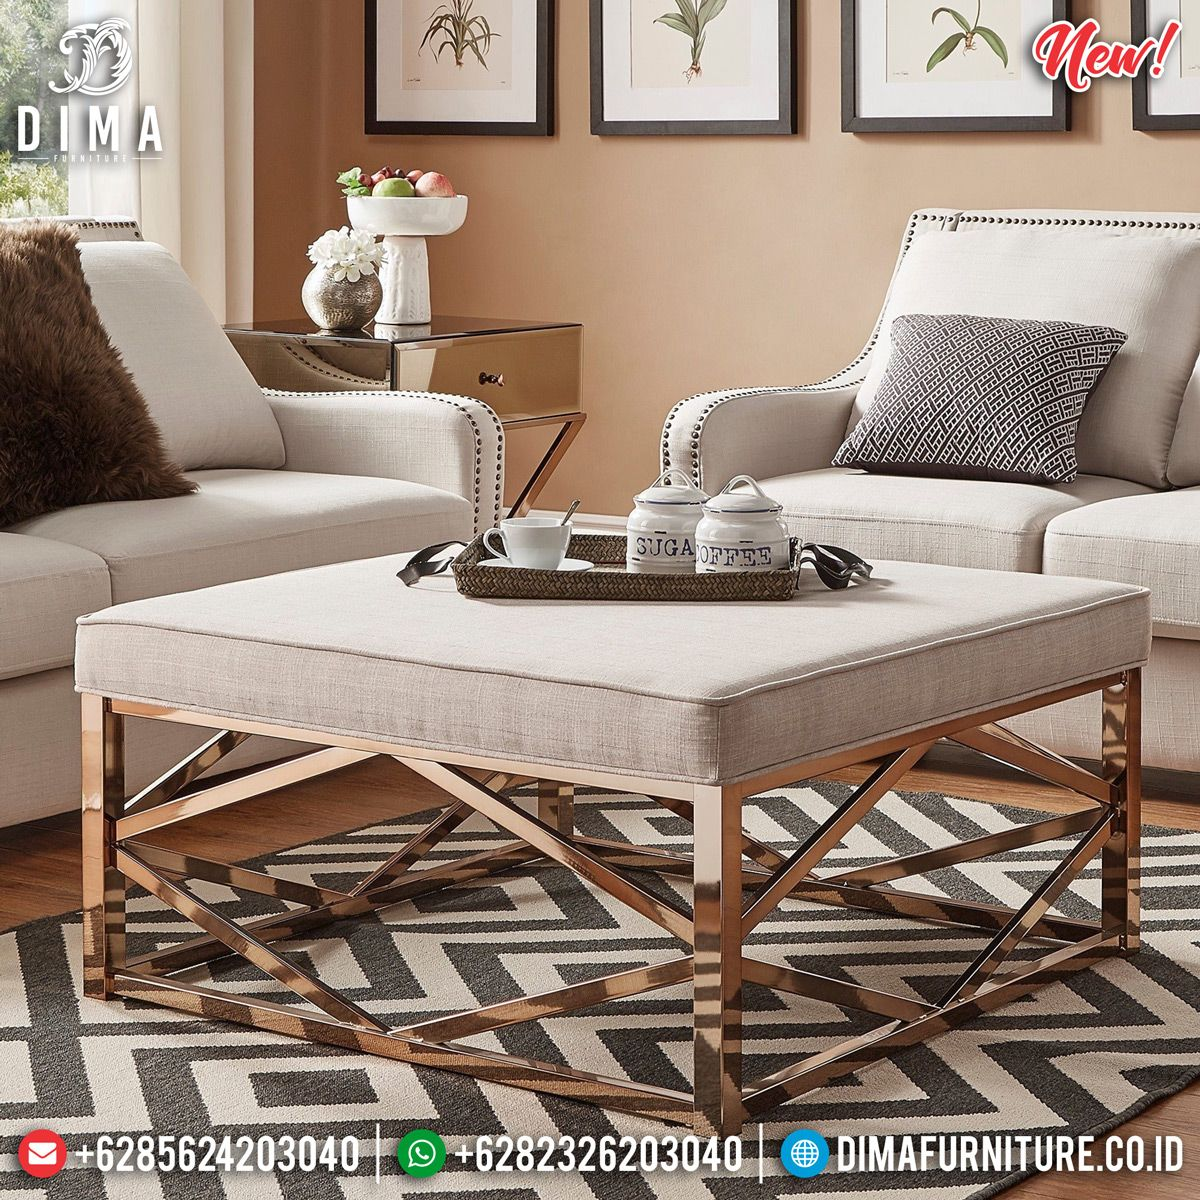 Modern Tufted Ottoman Leather Metal Wood Accent White Coffee Table Upholster New Leather Ottoman Coffee Table Tufted Ottoman Coffee Table White Leather Ottoman [ 1000 x 1000 Pixel ]